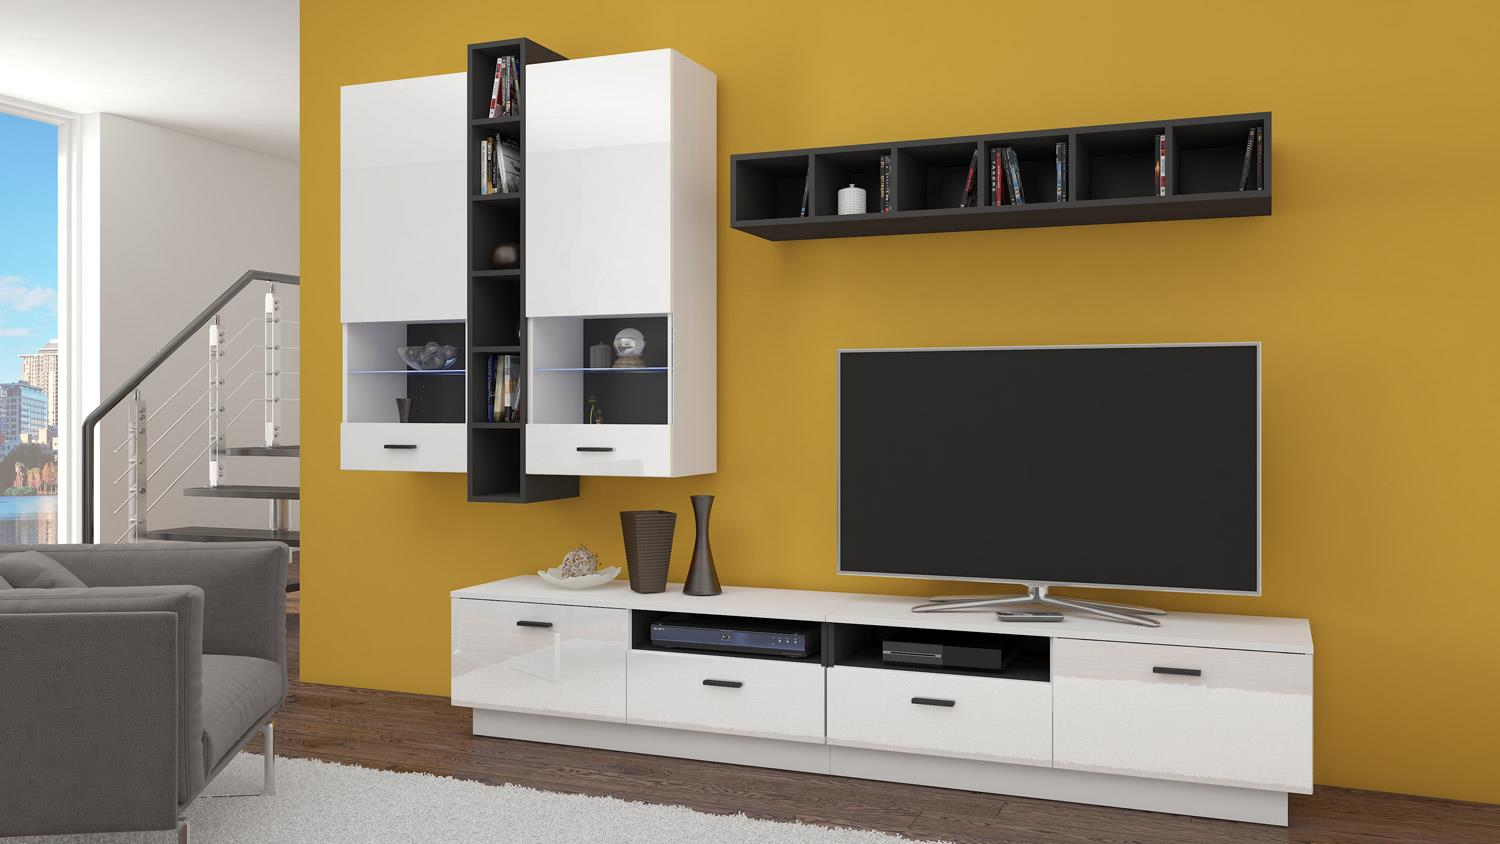 wohnwand flexi anbauwand wohnzimmer in wei hochglanz und schwarz matt. Black Bedroom Furniture Sets. Home Design Ideas